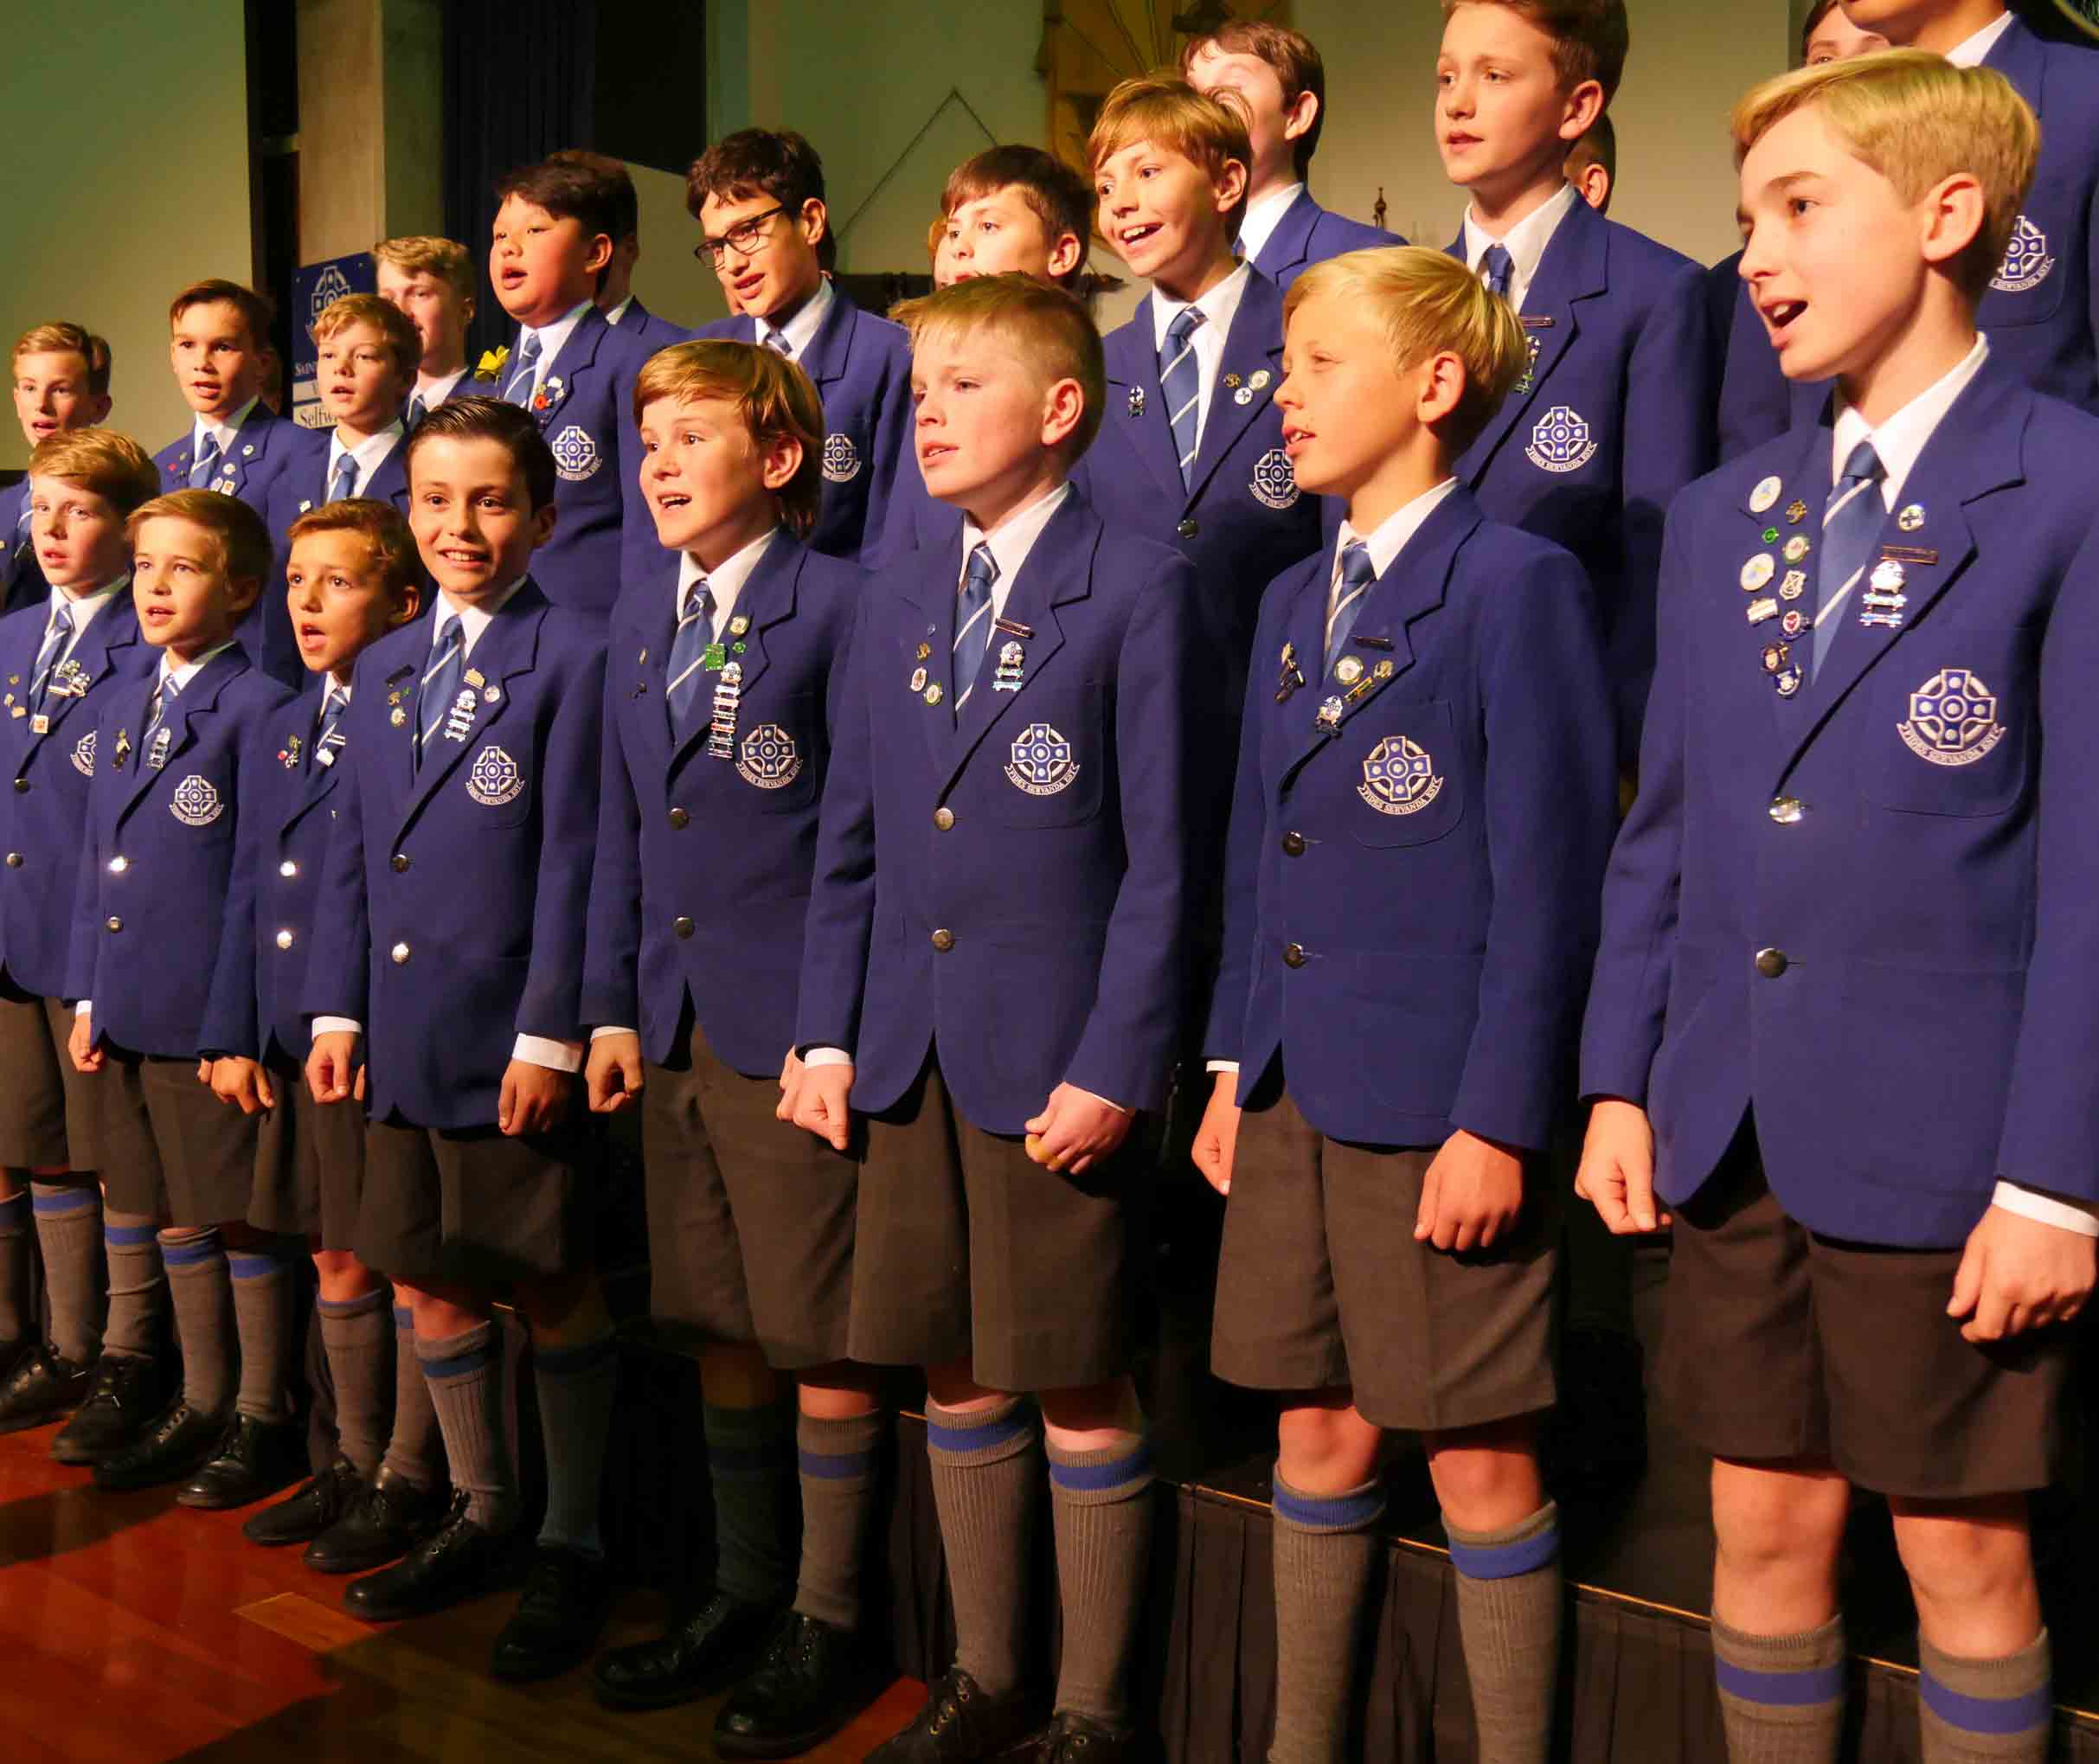 Saint-Kentigern-Boys'-School-Choral.jpg